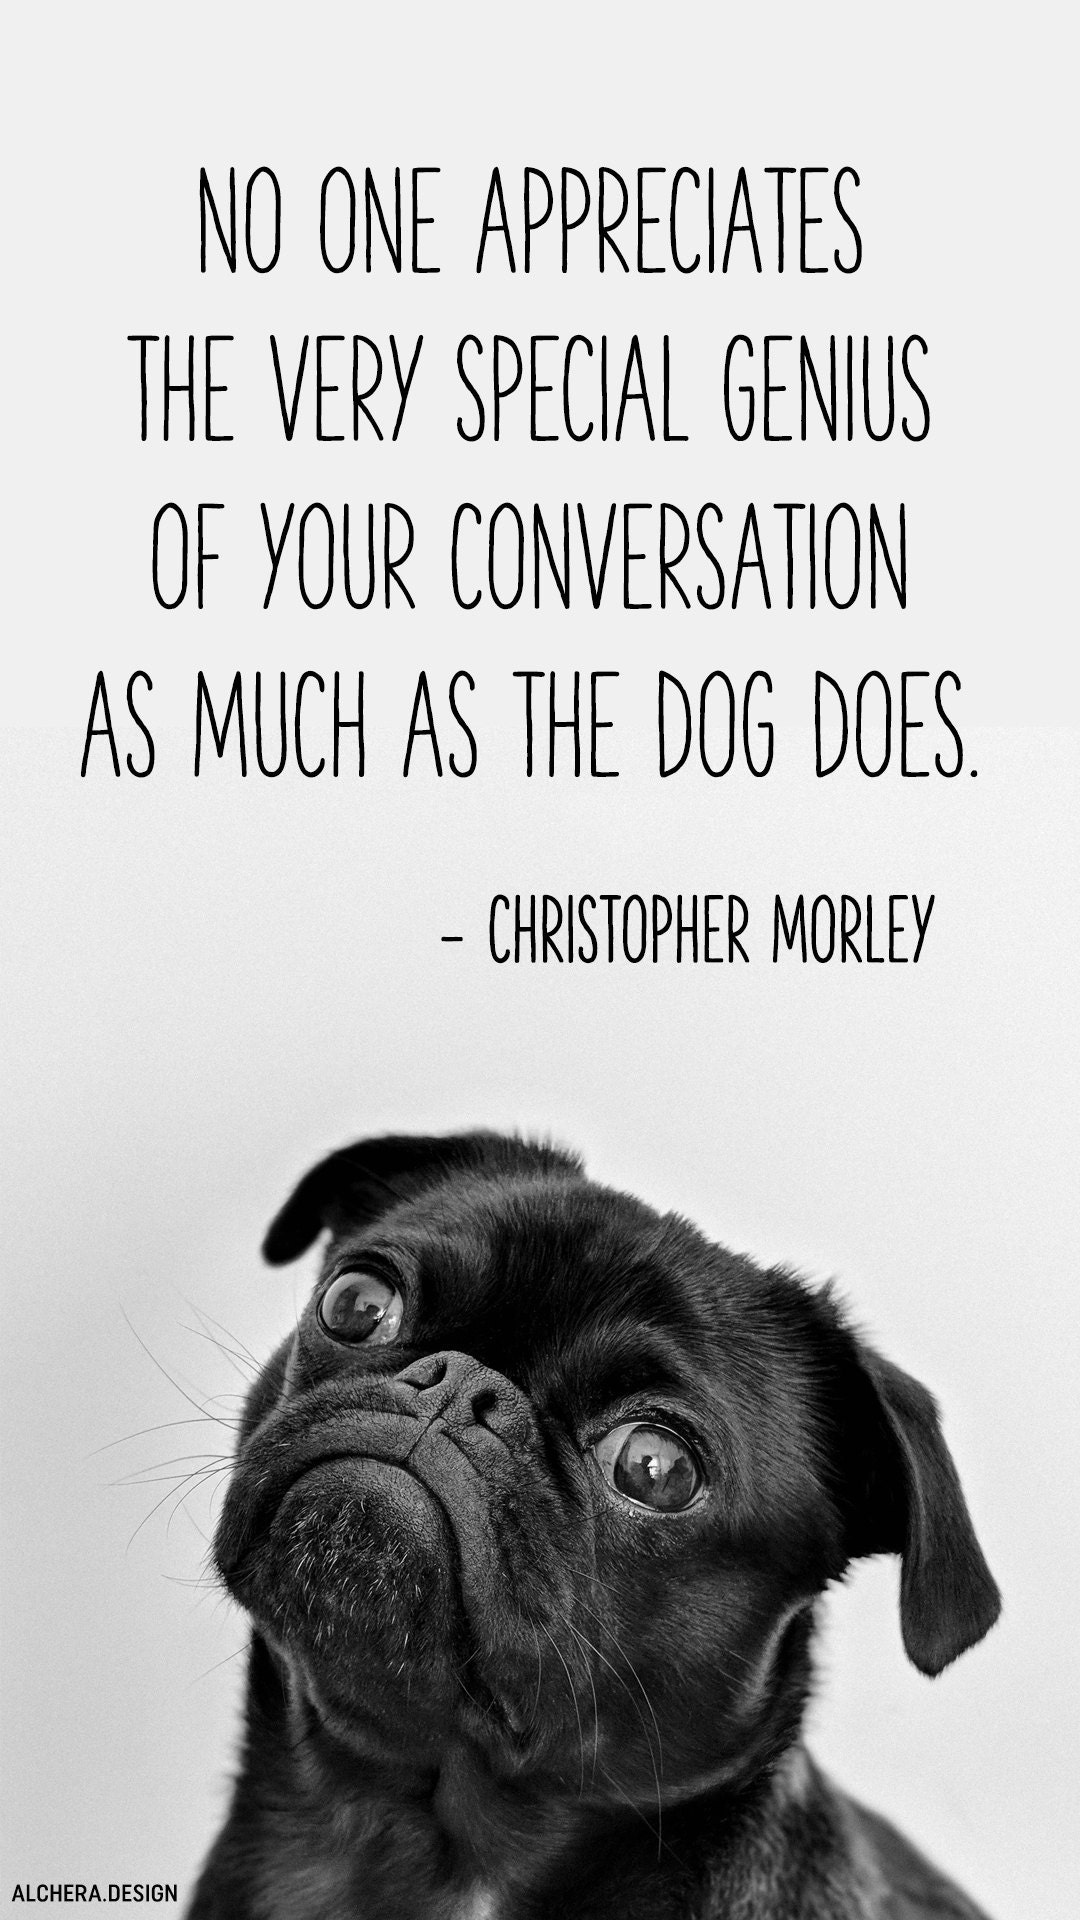 No one appreciates the very special genius of your conversation as the dog does.